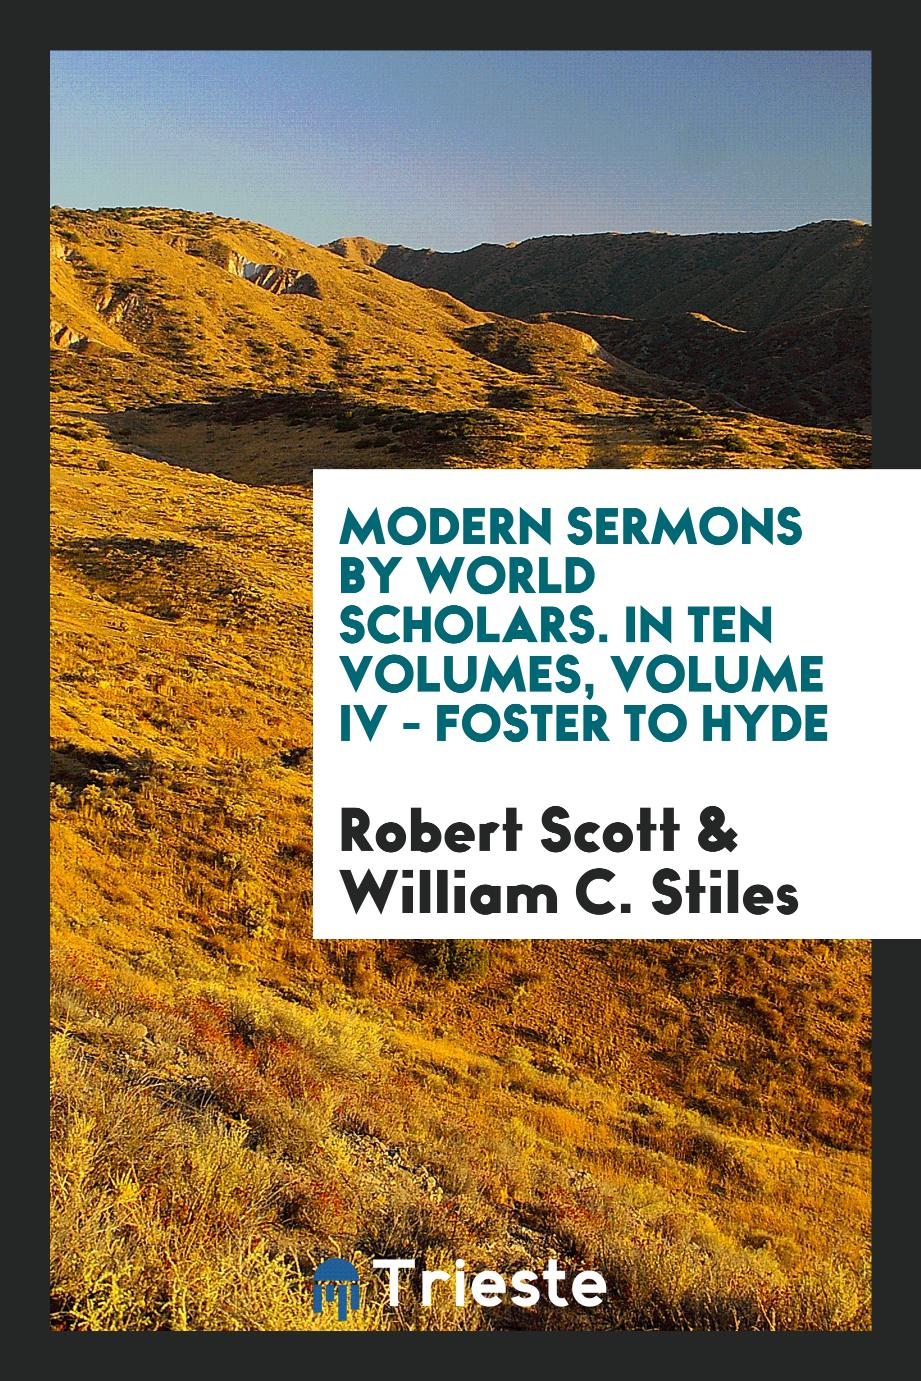 Modern Sermons by World Scholars. In Ten Volumes, Volume IV - Foster to Hyde